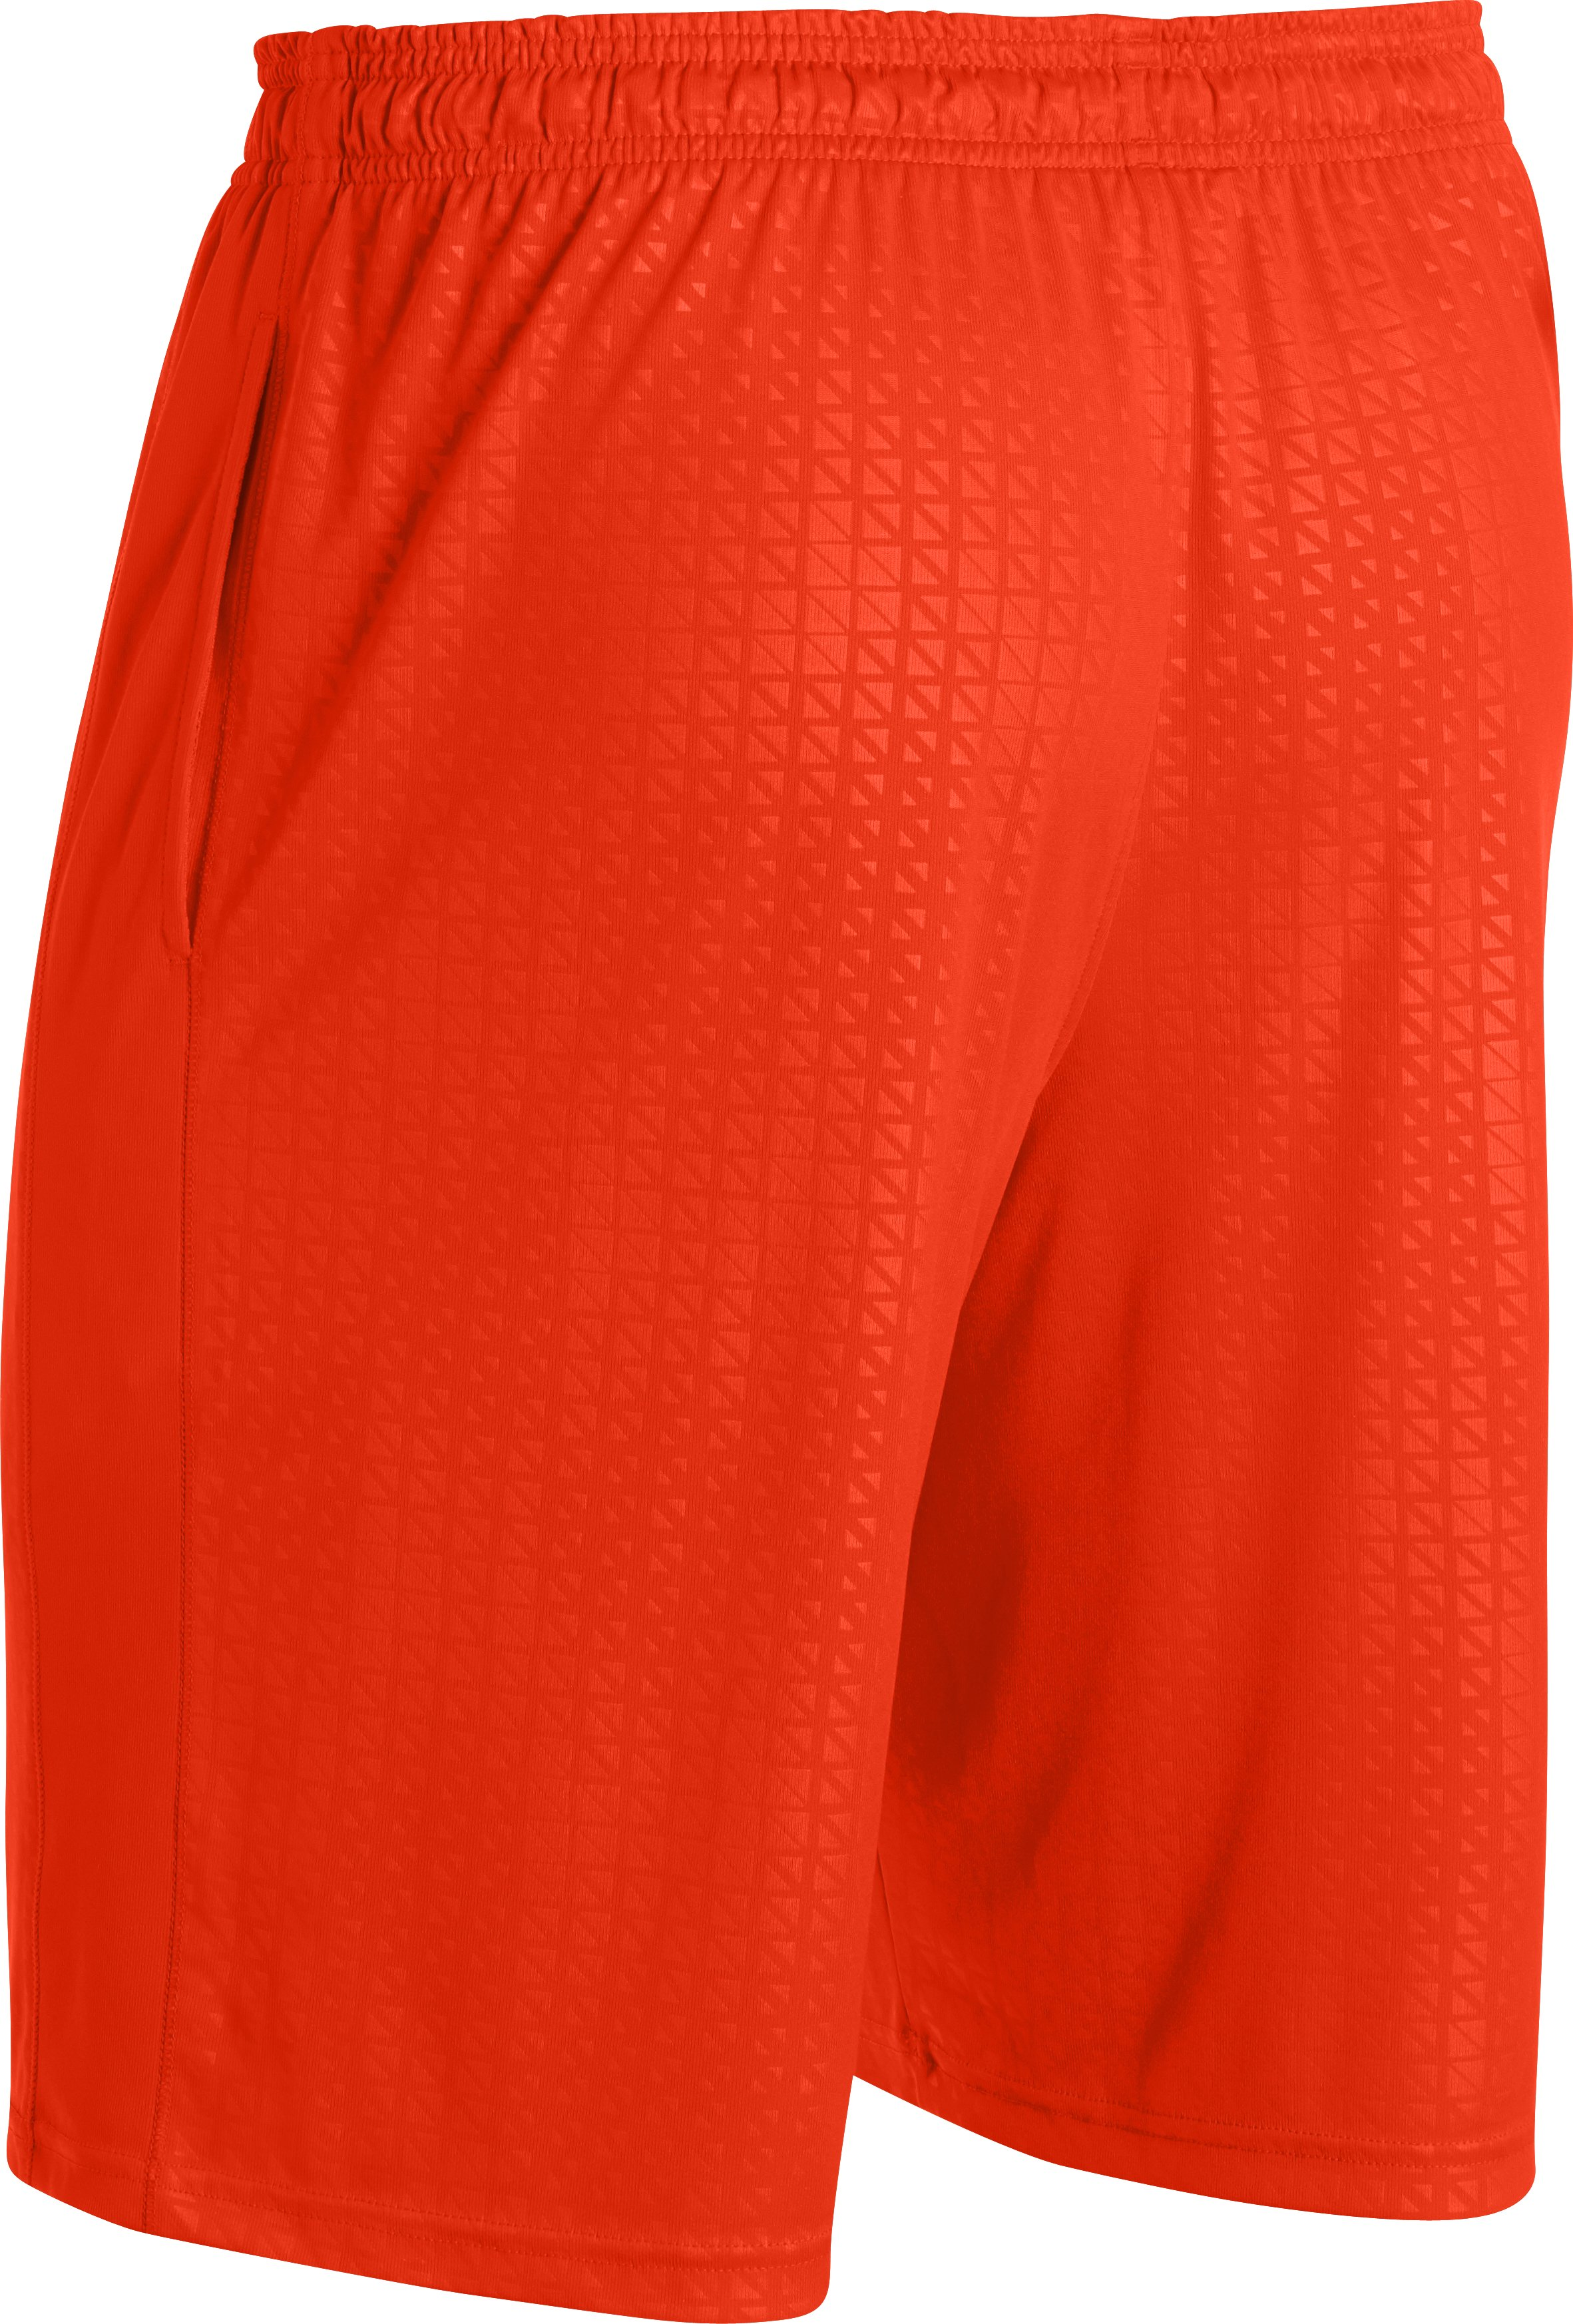 Men's UA Micro Printed Shorts, Volcano, undefined